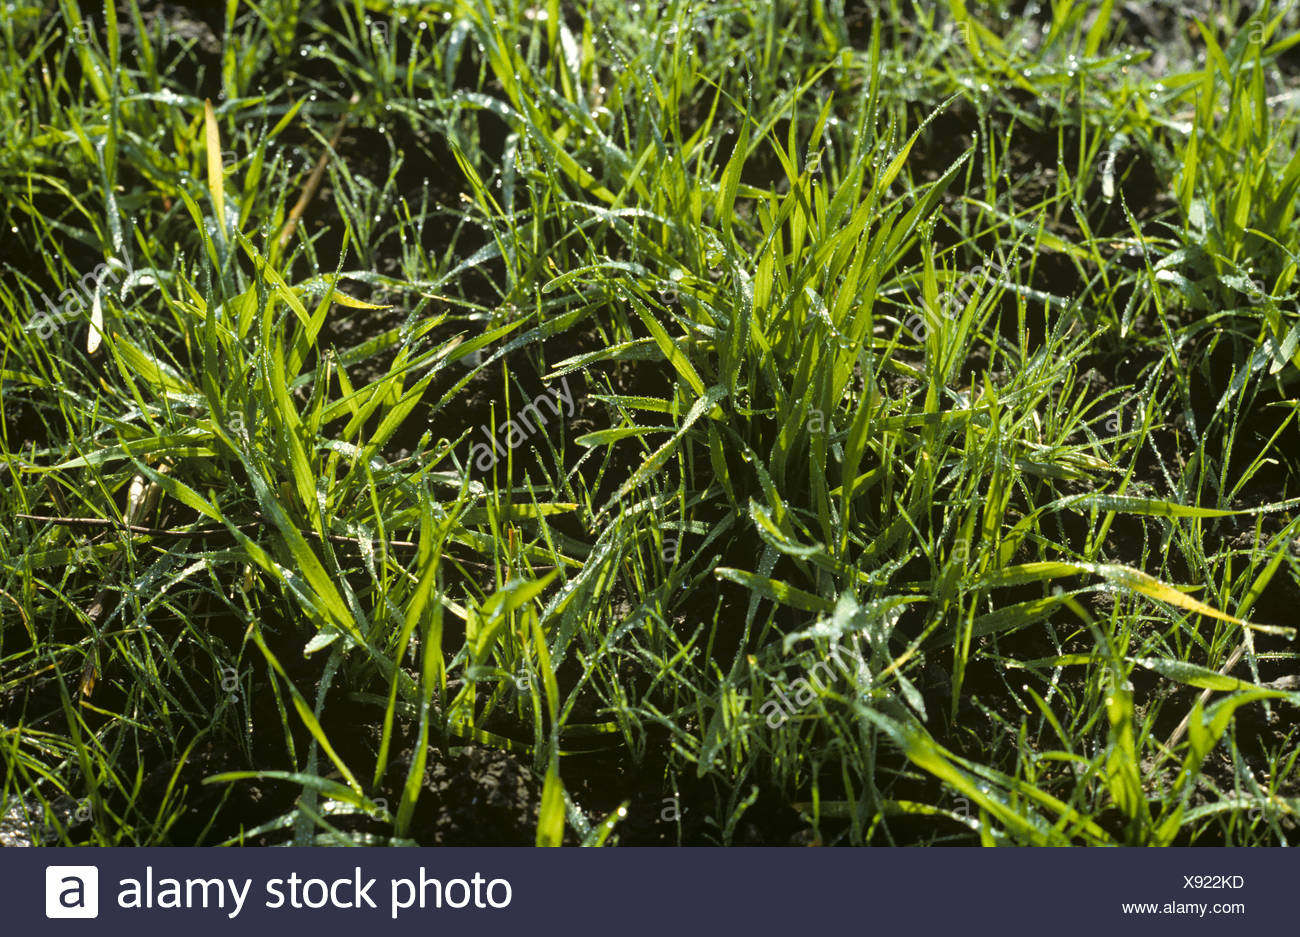 Seedling blackgrass Alopecurus myosuroides flush of annual arable grass weeds in young barley - Stock Image